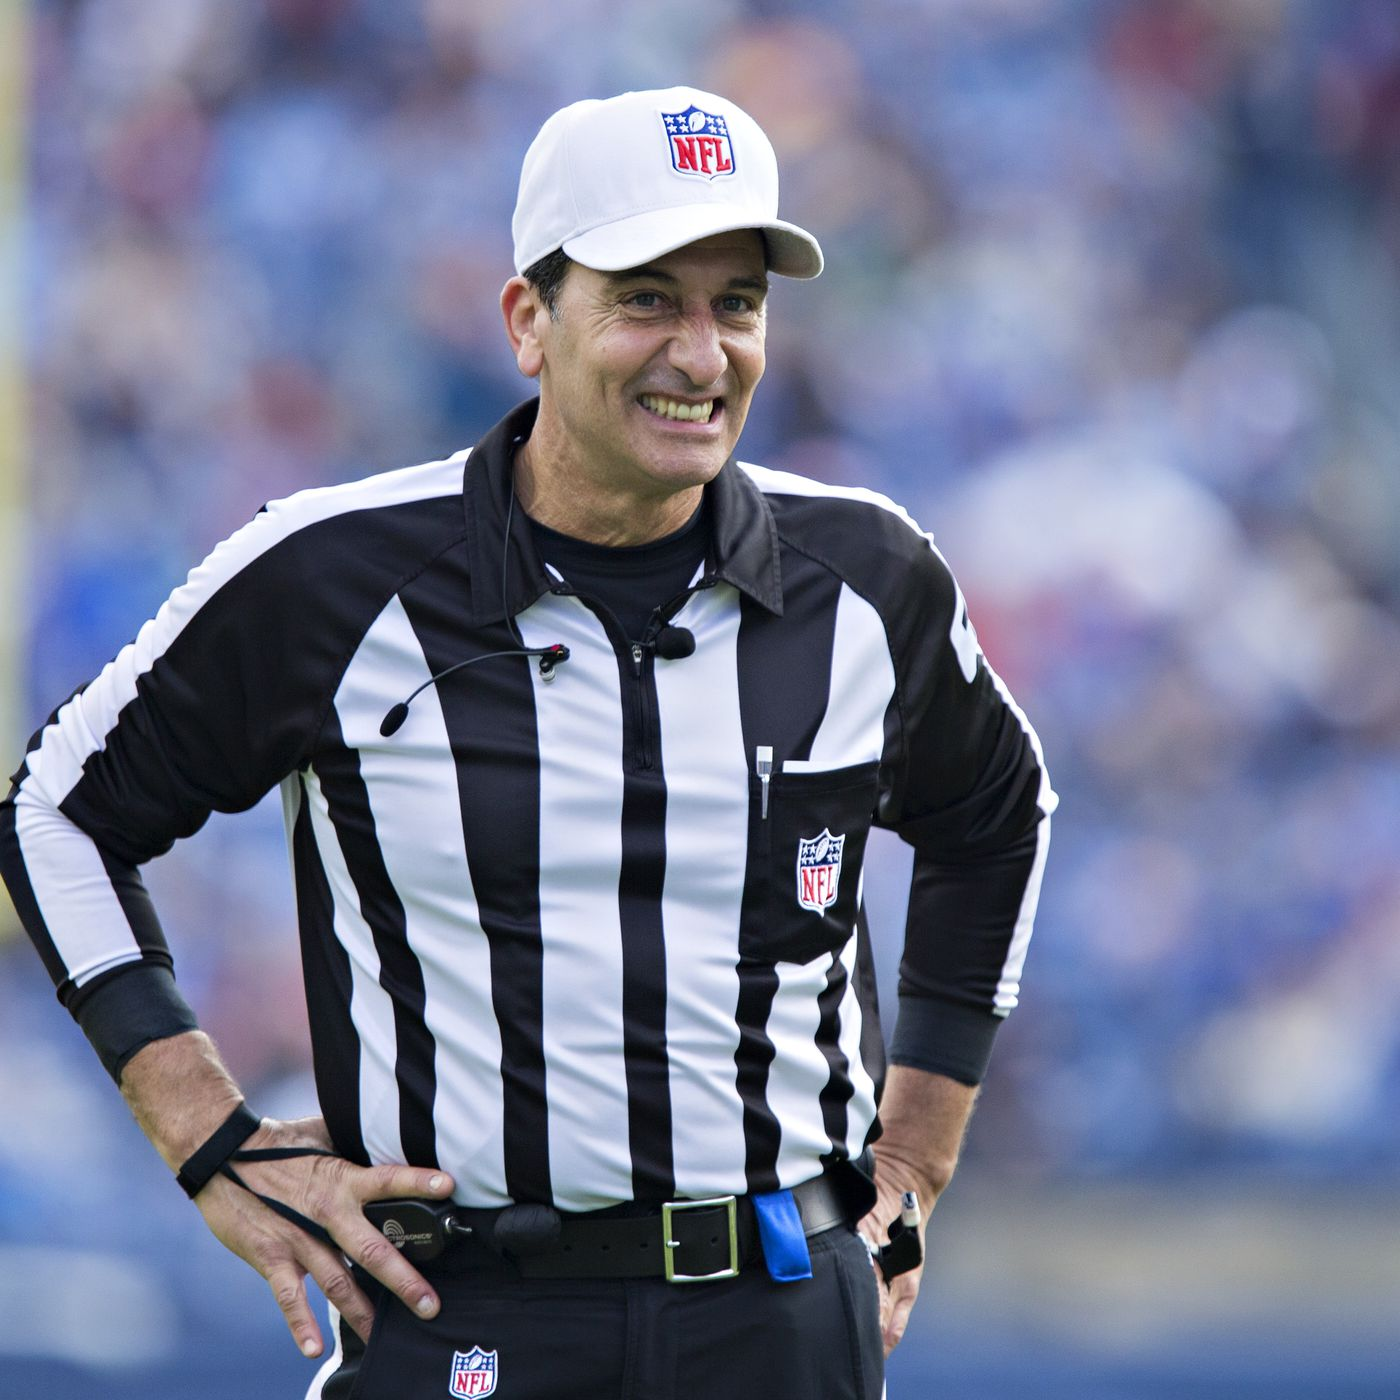 Super Bowl Lii Gene Steratore Assigned As Referee For Patriots Vs